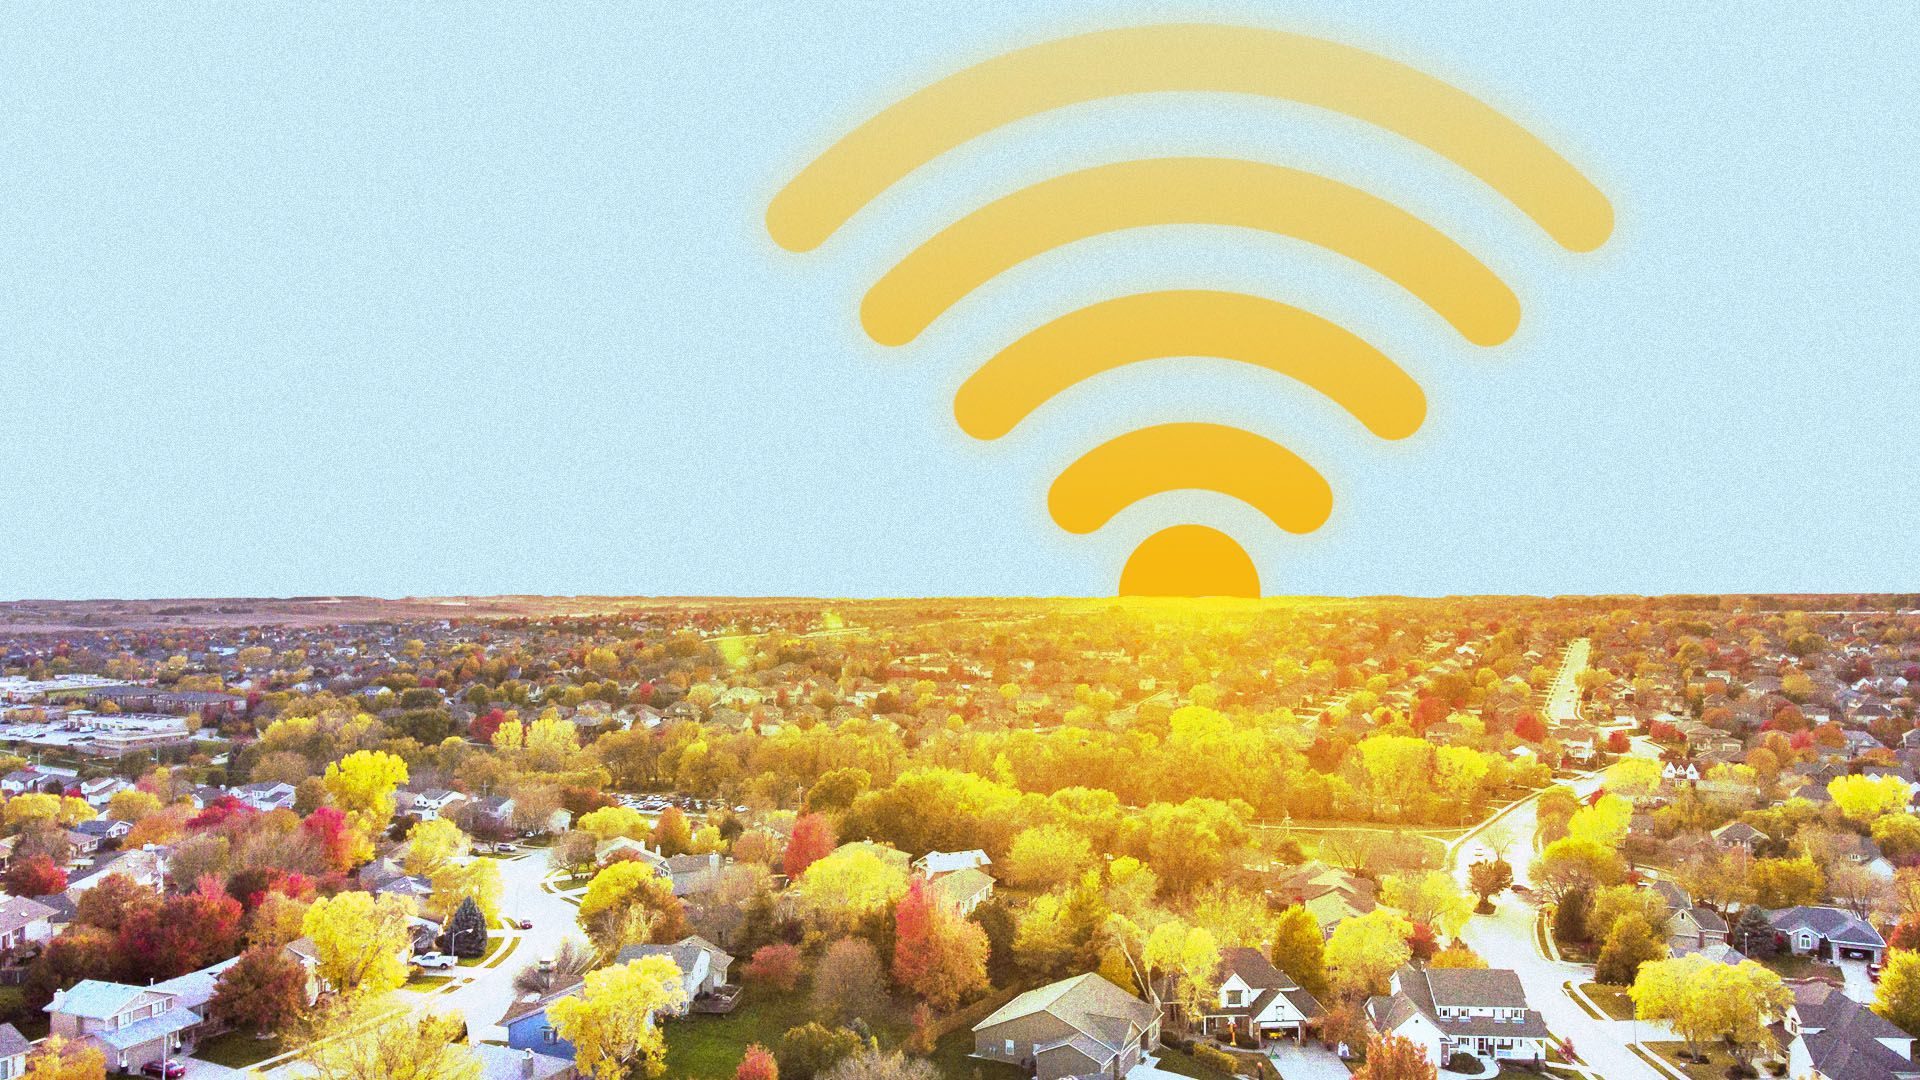 Illustration of a wifi signal over a neighborhood